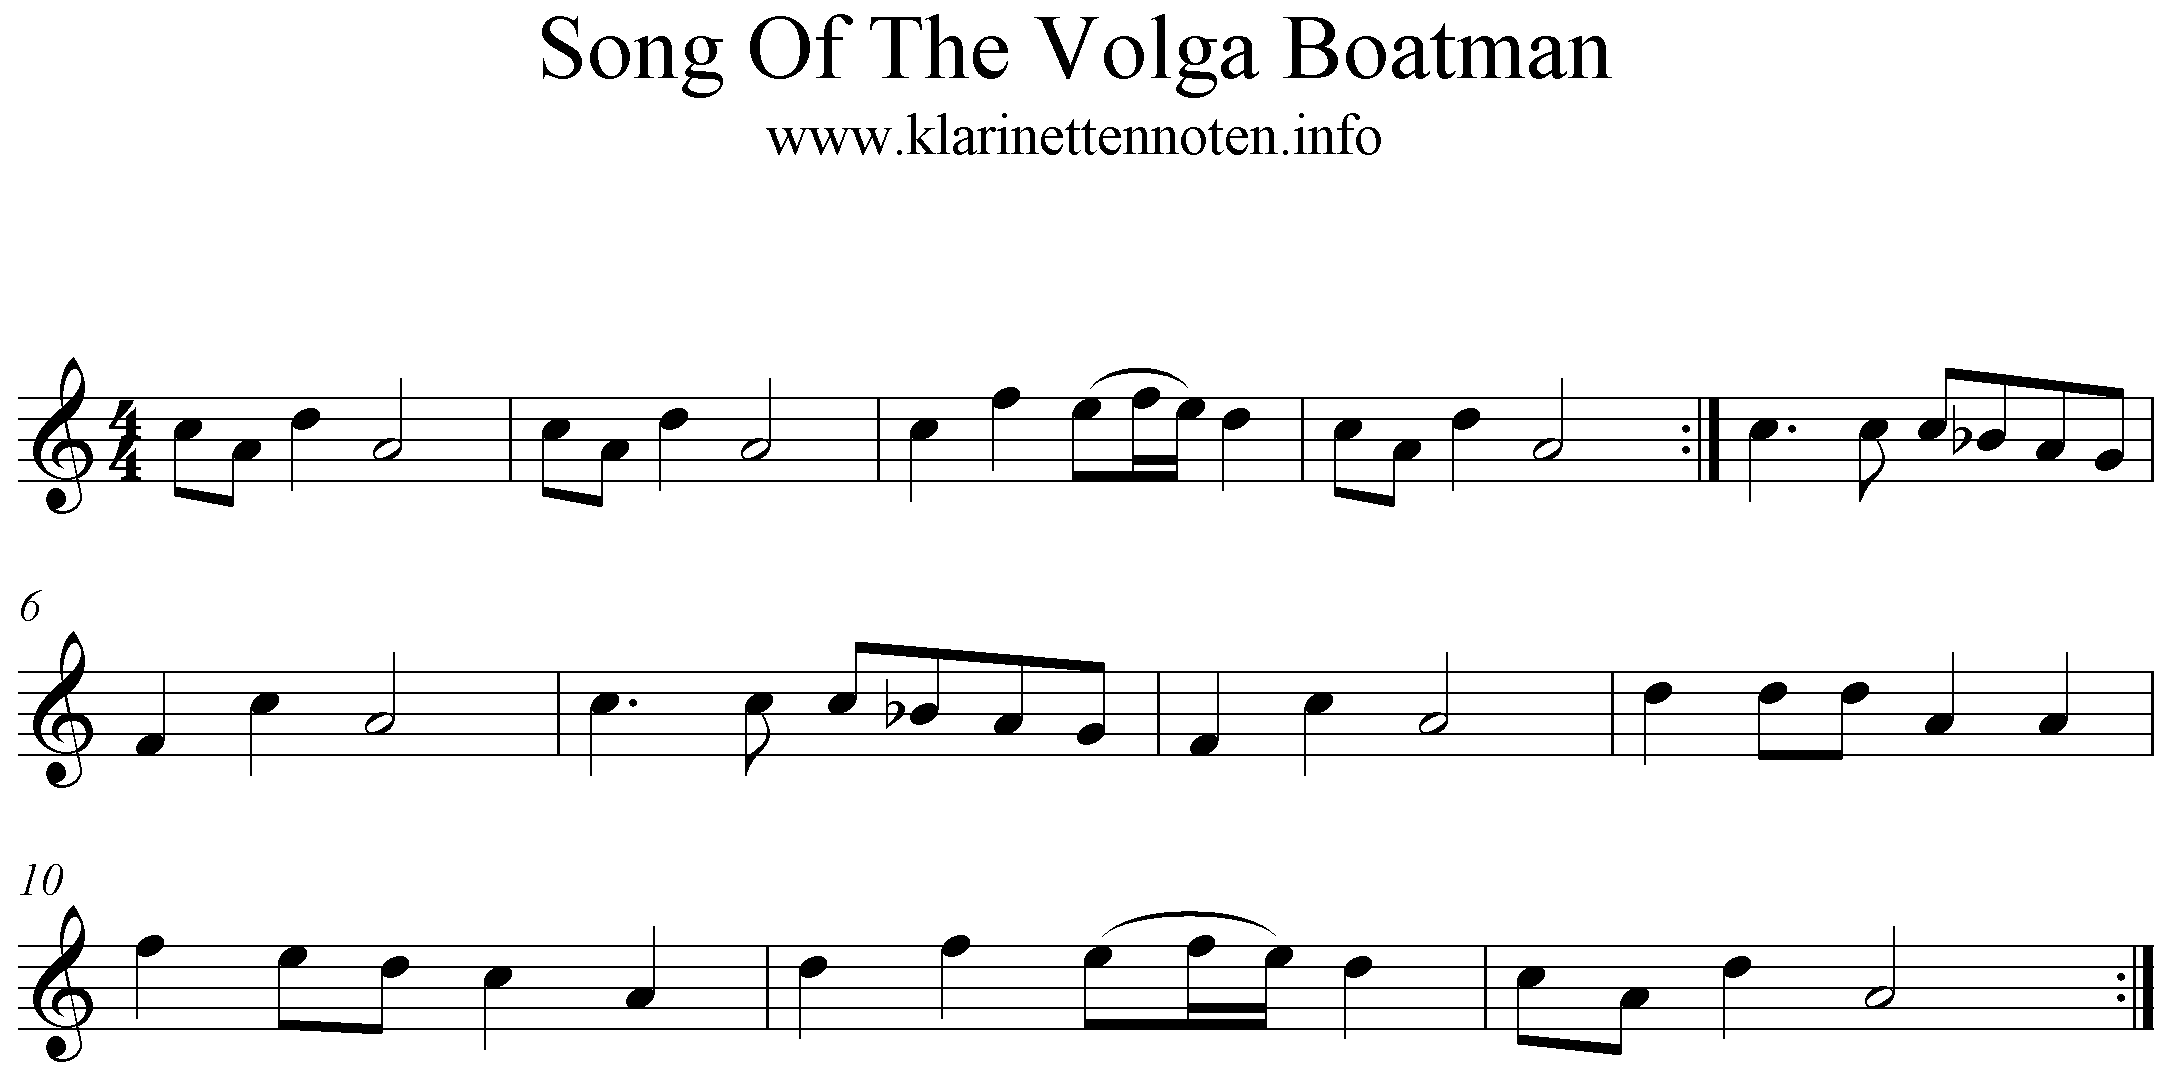 Song Of The Volga Boatman - Klarinette, Clarinet